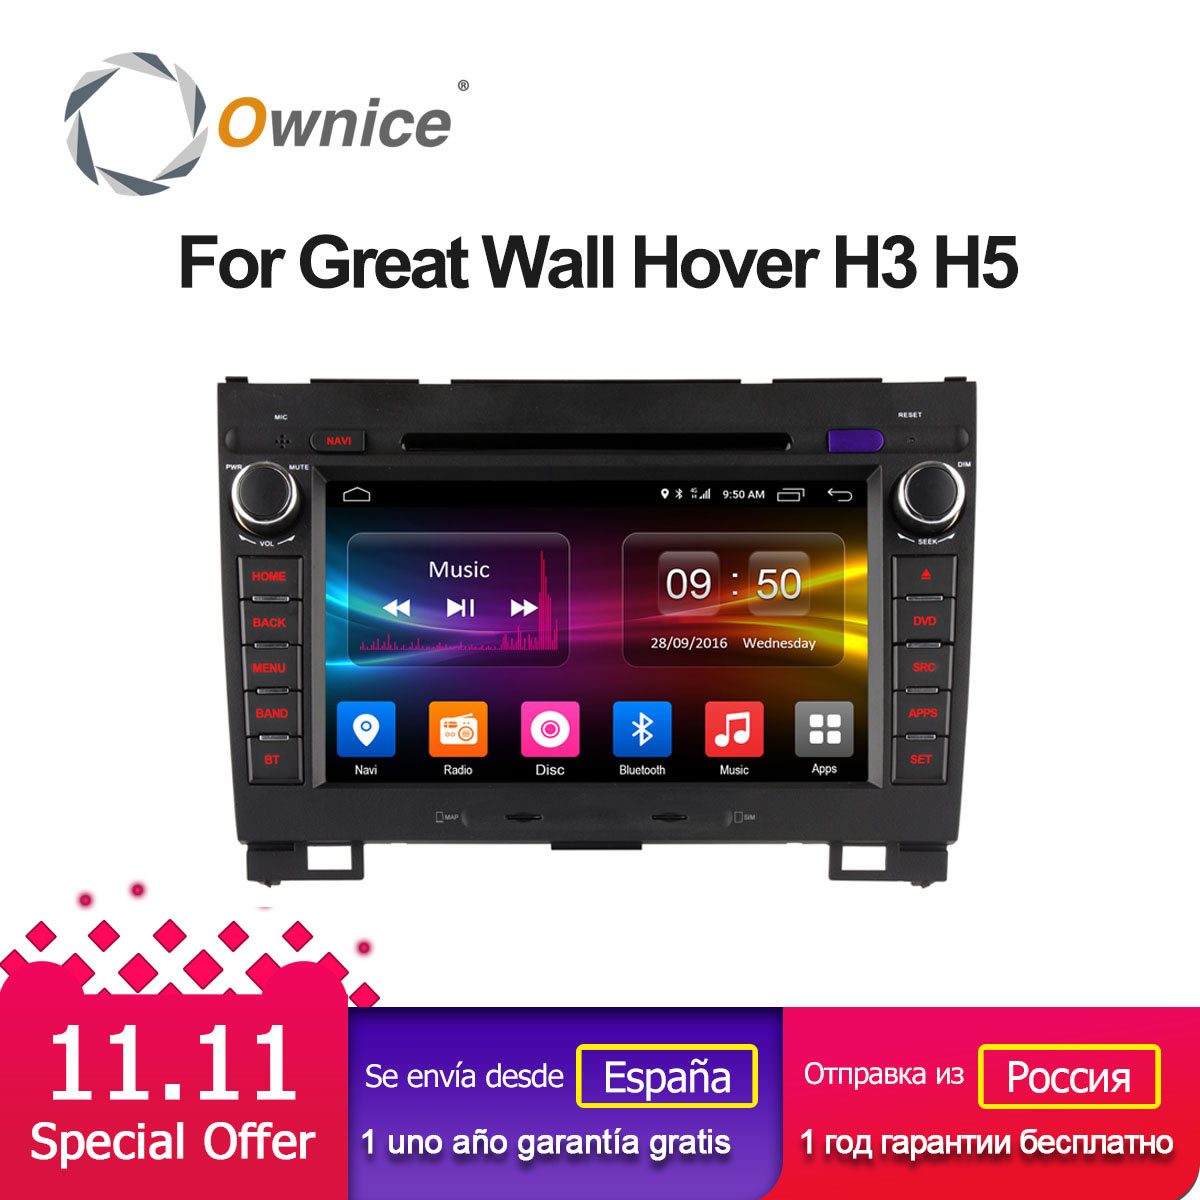 Ownice C500 4G SIM LTE Android 6.0 Quad Core Car dvd player for Greatwall Haval Hover H5 H3 gps navi Radio WIFI 2GB RAM 32GB ownice c500 android 6 0 octa 8 core 4g sim lte car dvd player for great wall hover h3 h5 with gps navigation radio 32g rom